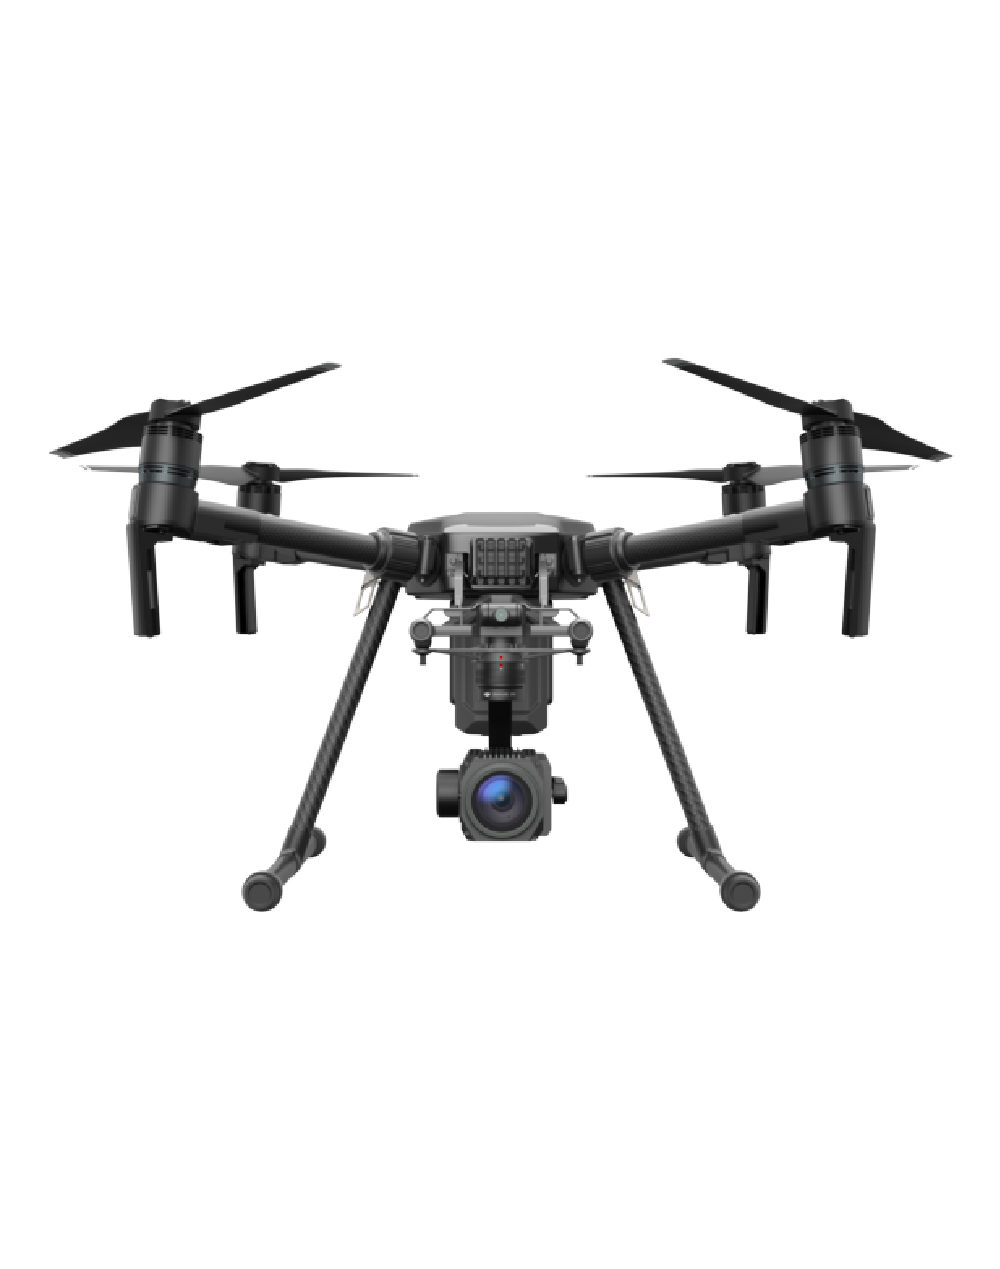 MATRICE 200 – MJG – DJI, Mobile and Service